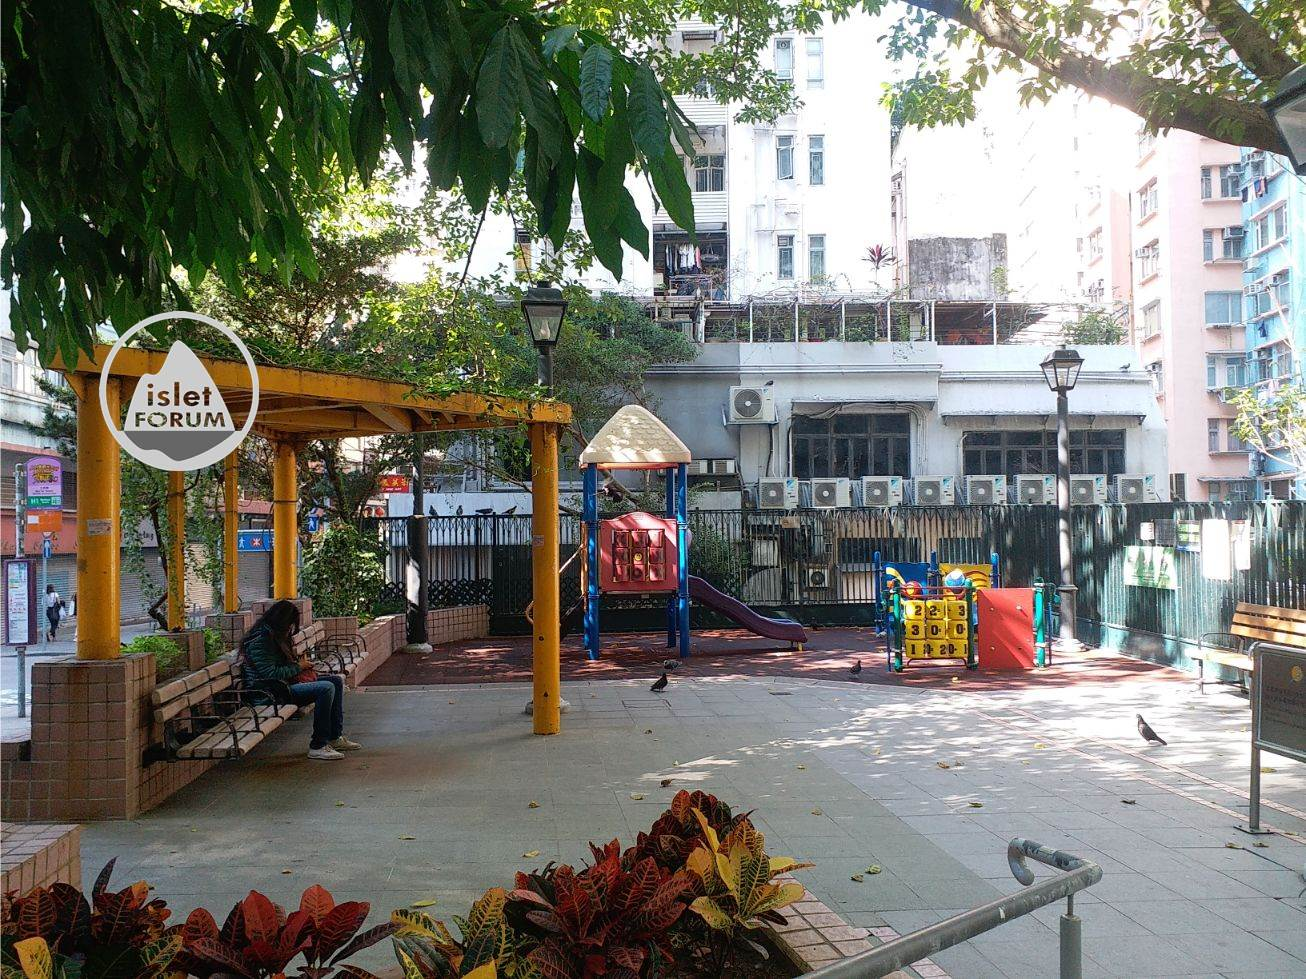 荷李活道兒童遊樂場hollywood road childrens playground (3).jpg